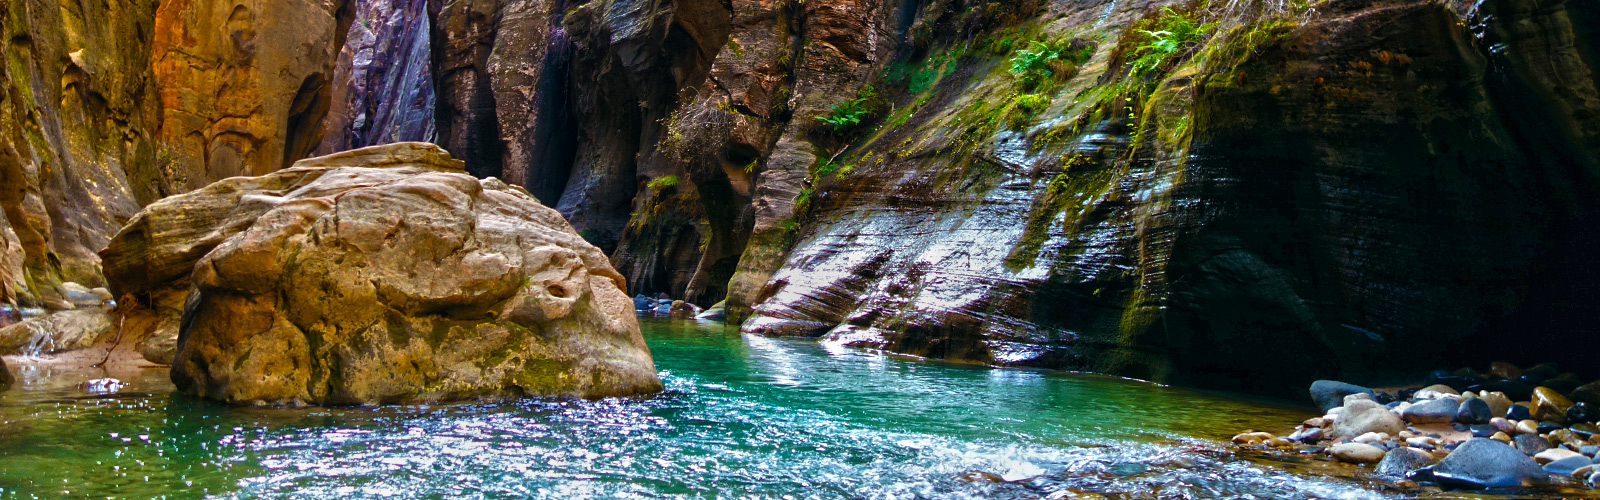 Tips for Hiking The Narrows – Zion National Park